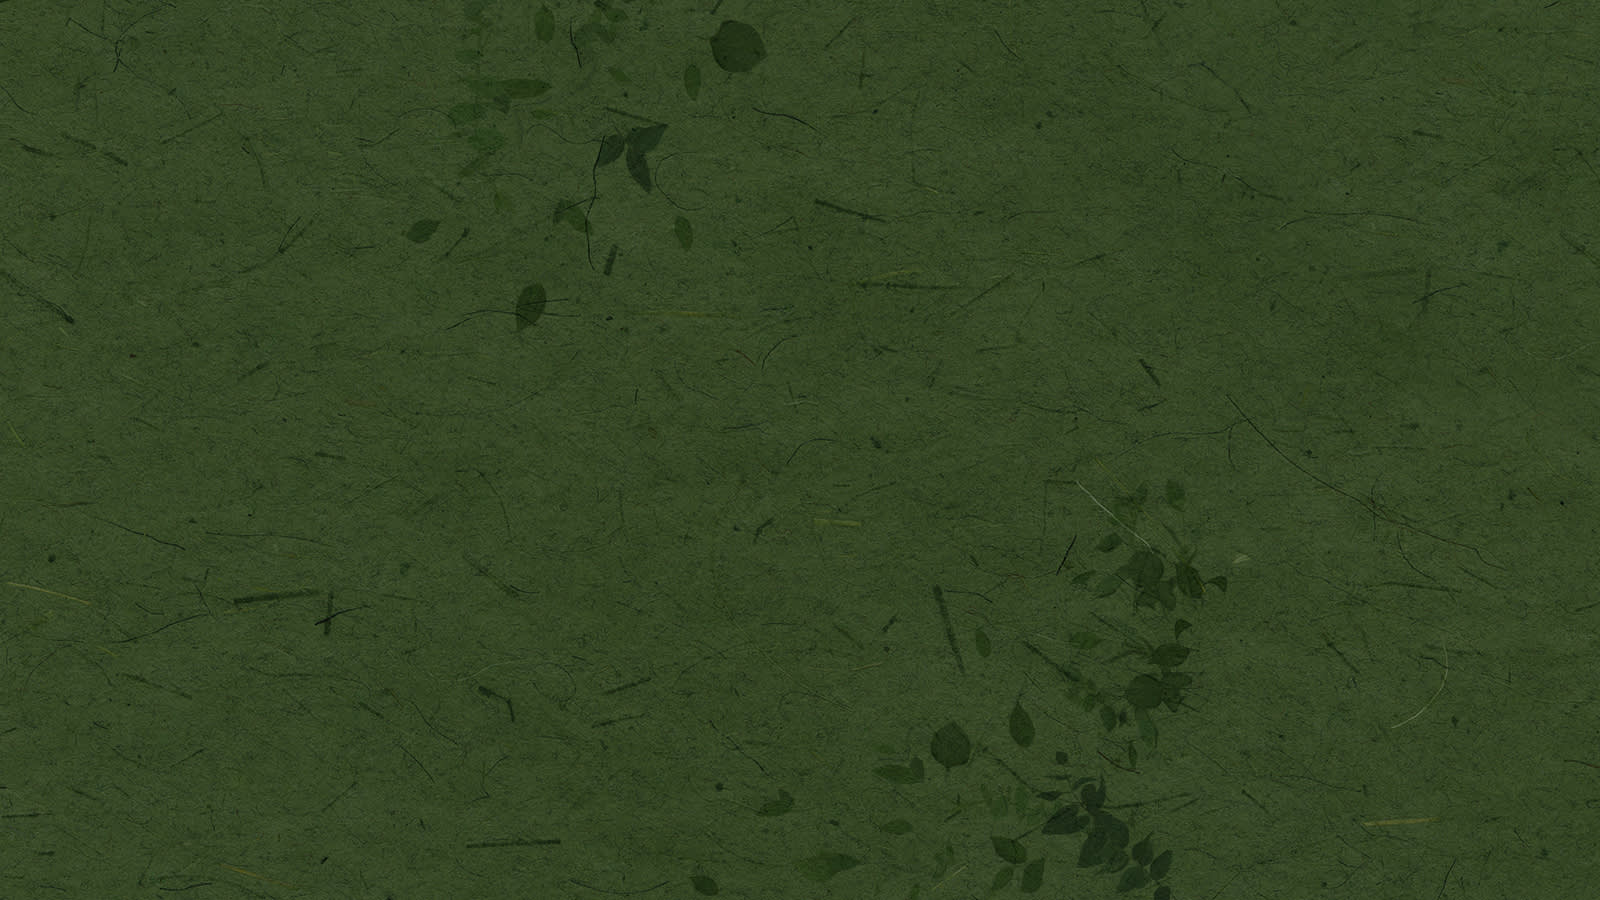 Green paper background with leaves